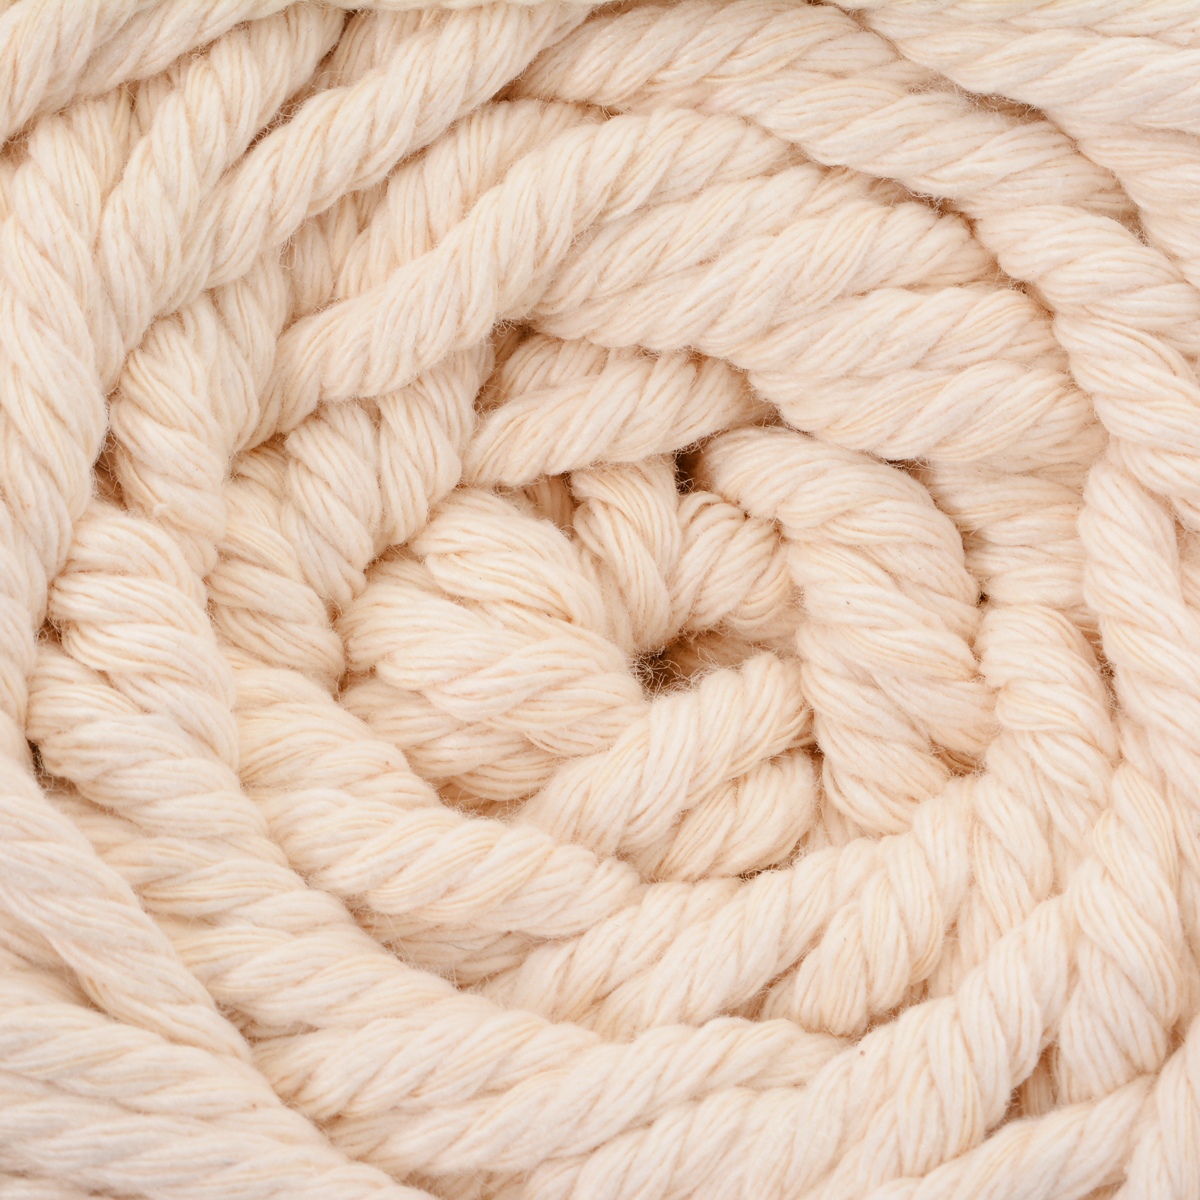 Durable 4mm Cotton Macrame Rope Natural Beige Twisted Cord Artisan Cord Rope DIY Hand Craft knitting Textile Supplies 4mmx100m